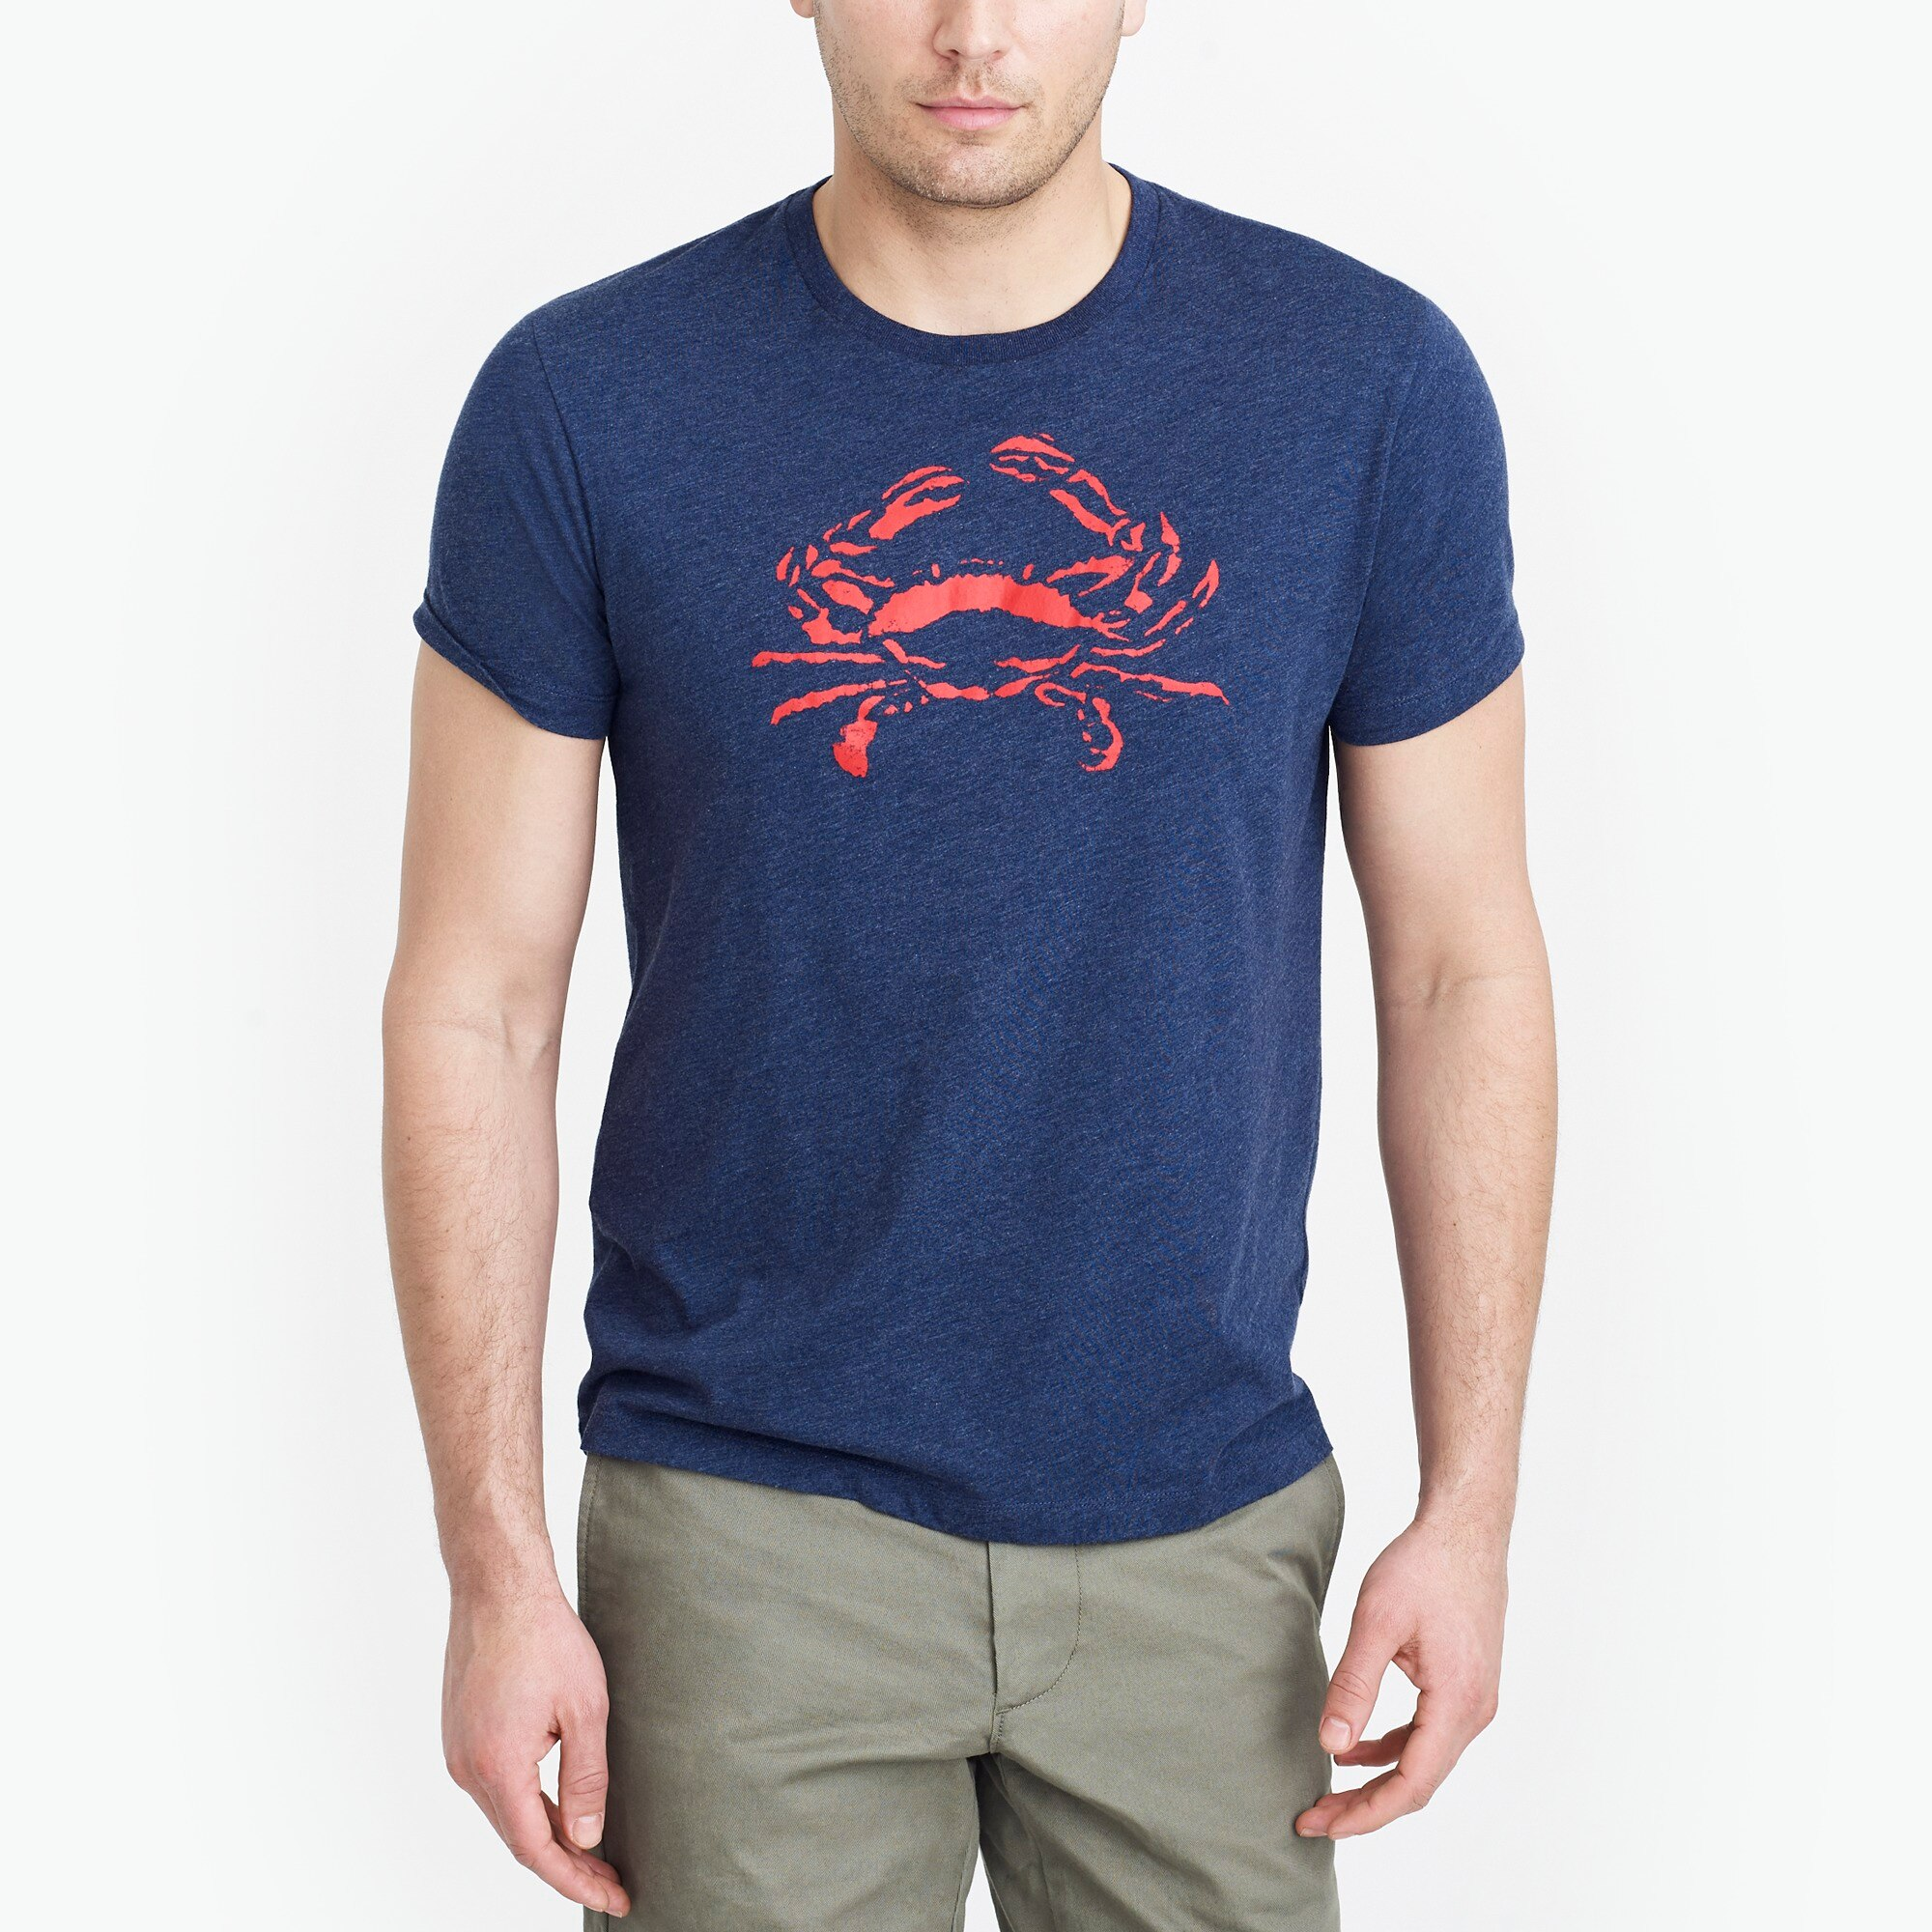 J.Crew Mercantile Broken-in crab T-shirt factorymen t-shirts & henleys c